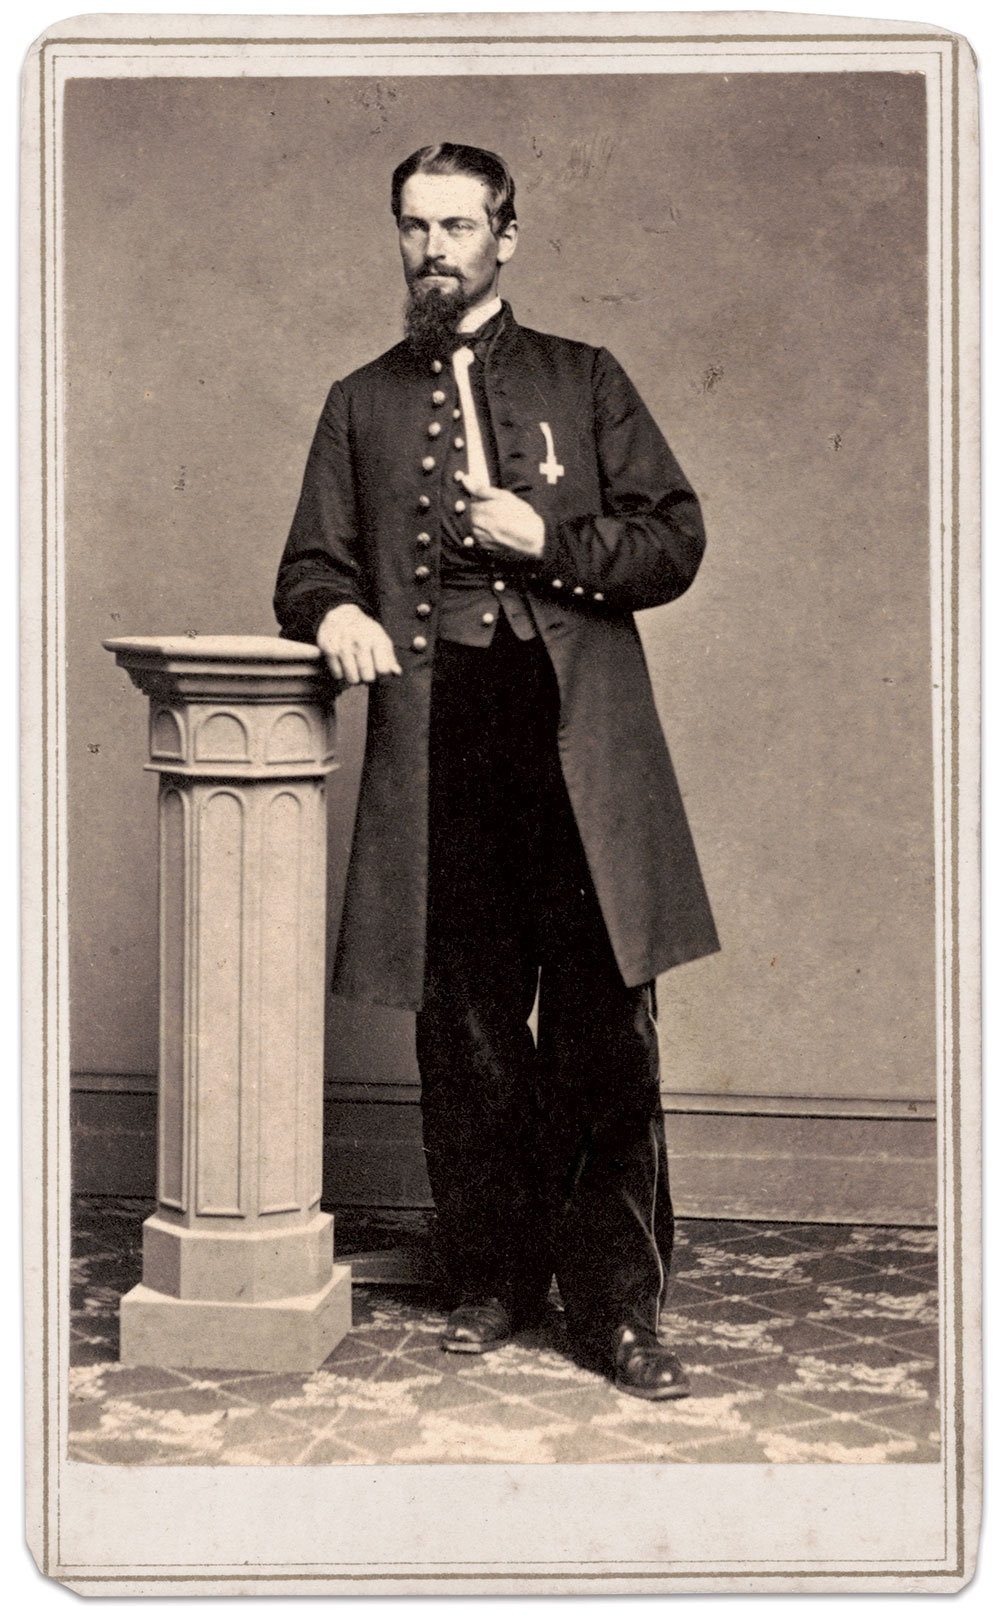 Carte de visite by Clark of New York City. The Liljenquist Family Collection at The Library of Congress.